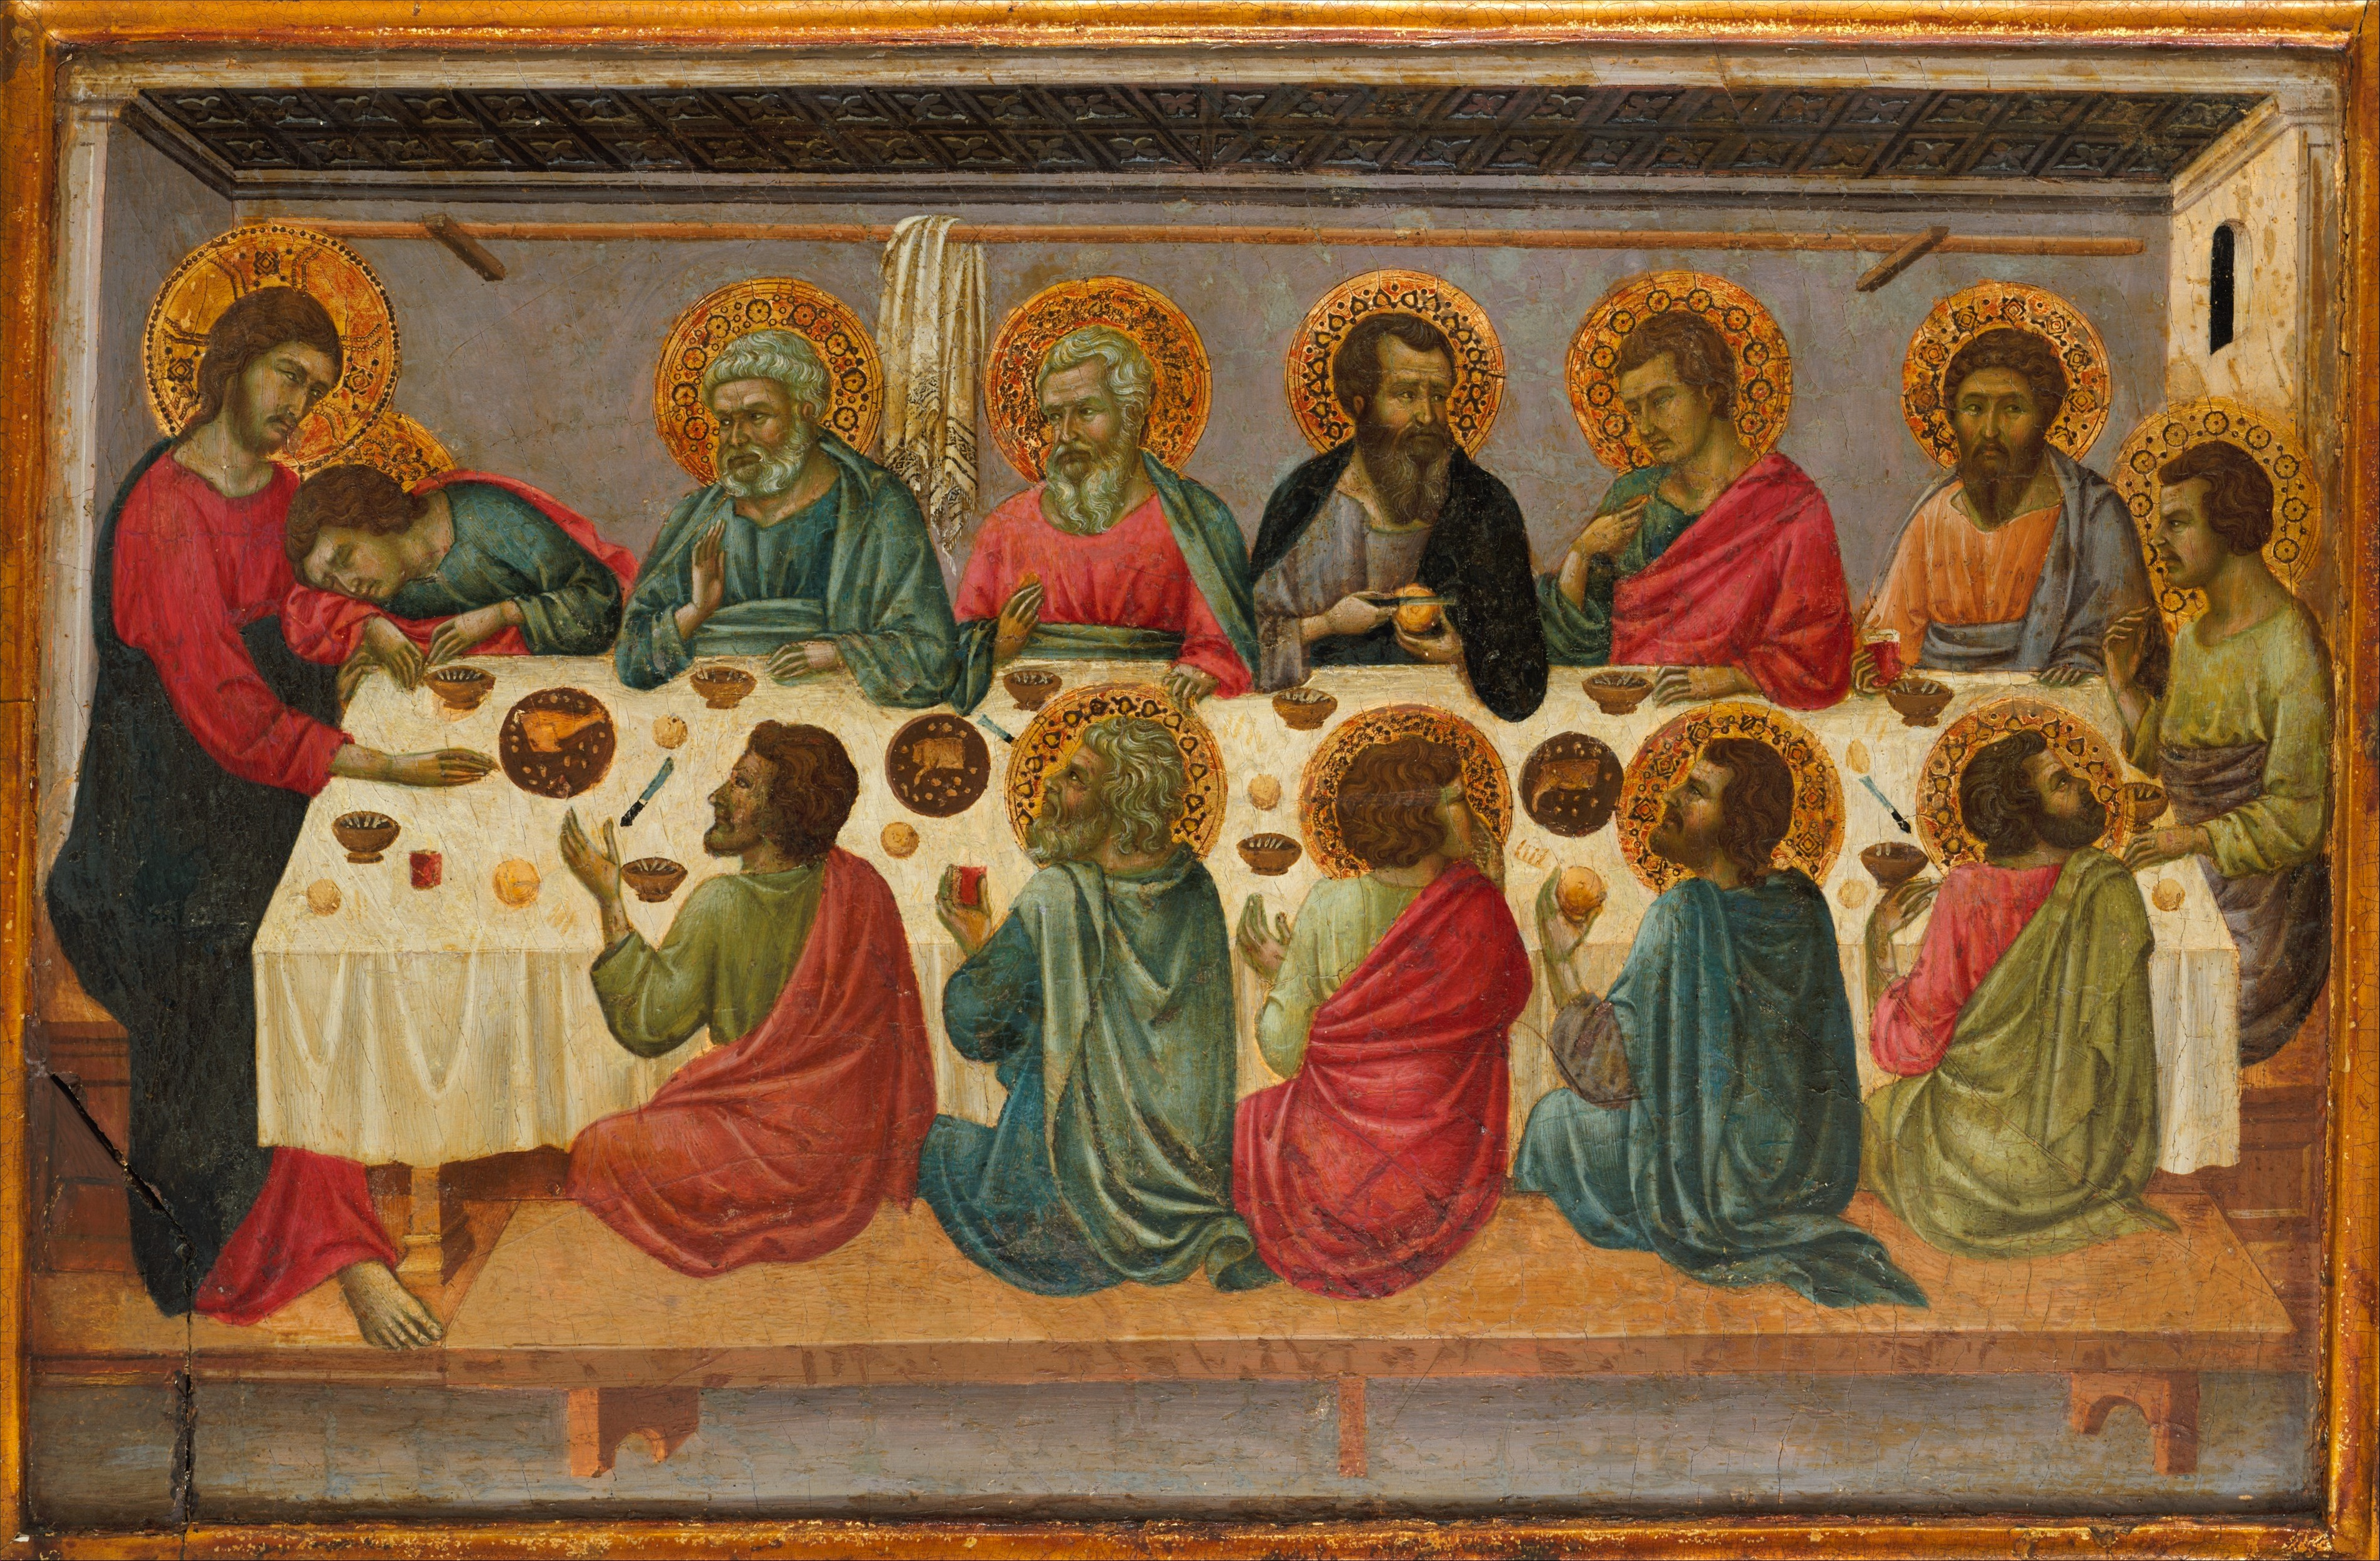 should everyone be welcome at the communion table?